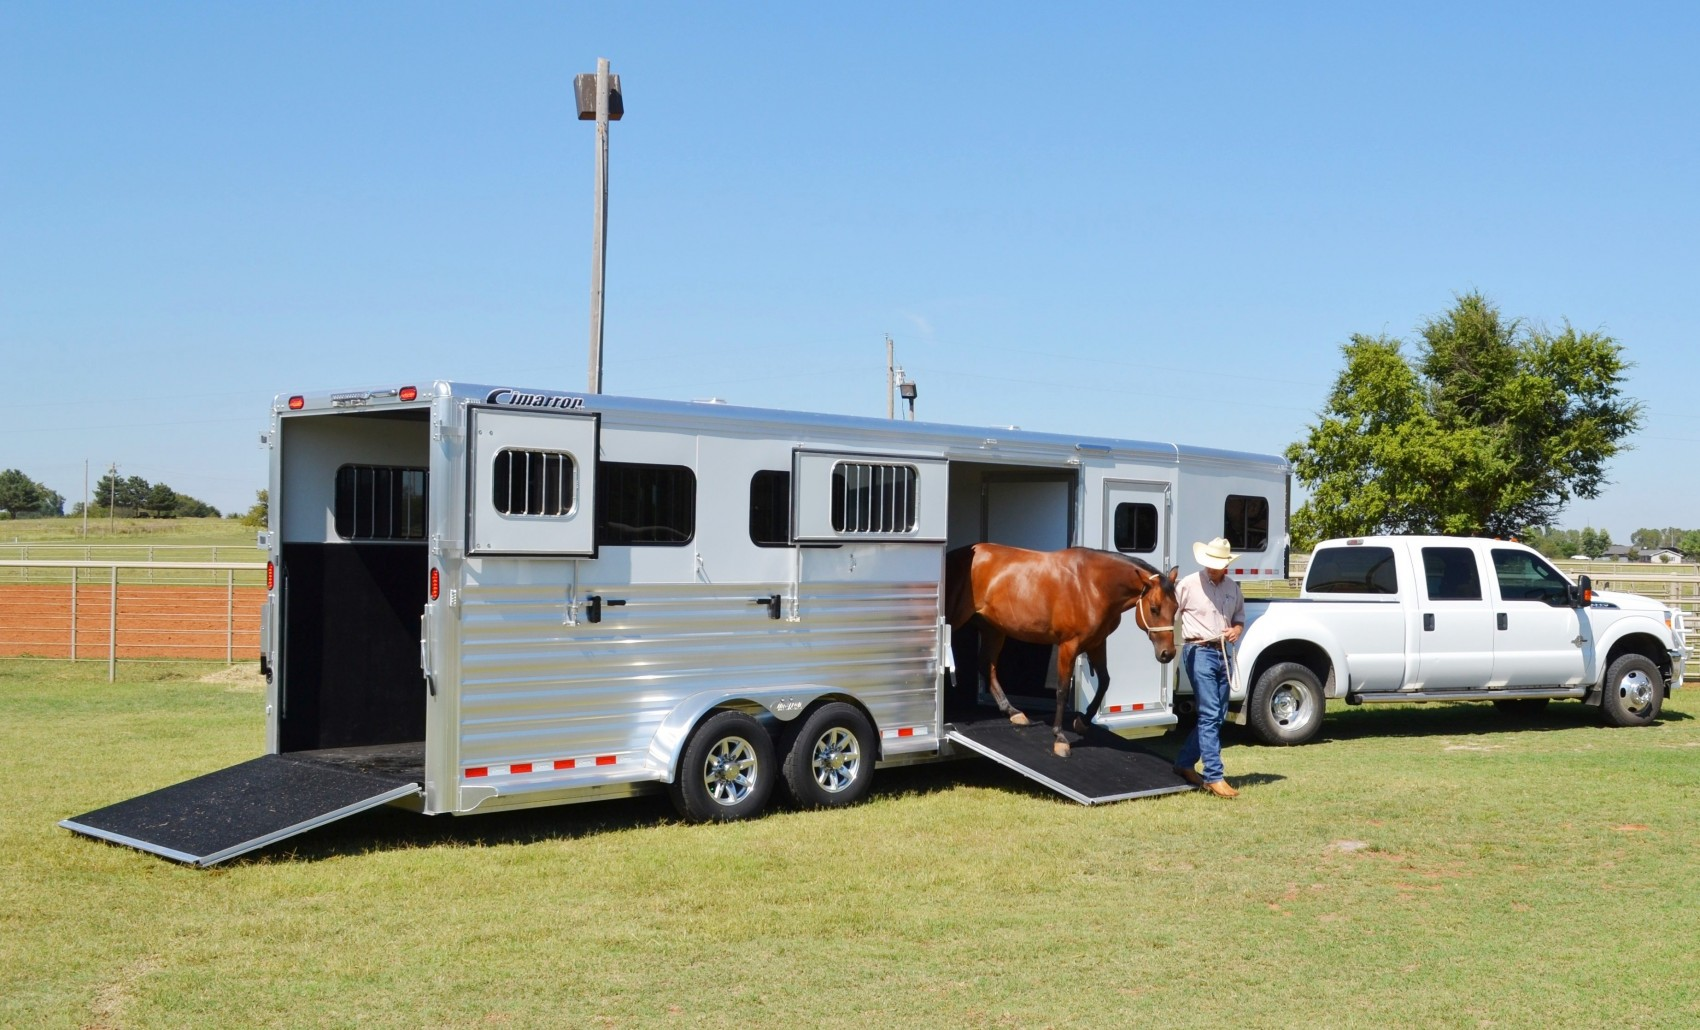 Loading and Hauling a Horse: Using a Transportation Company